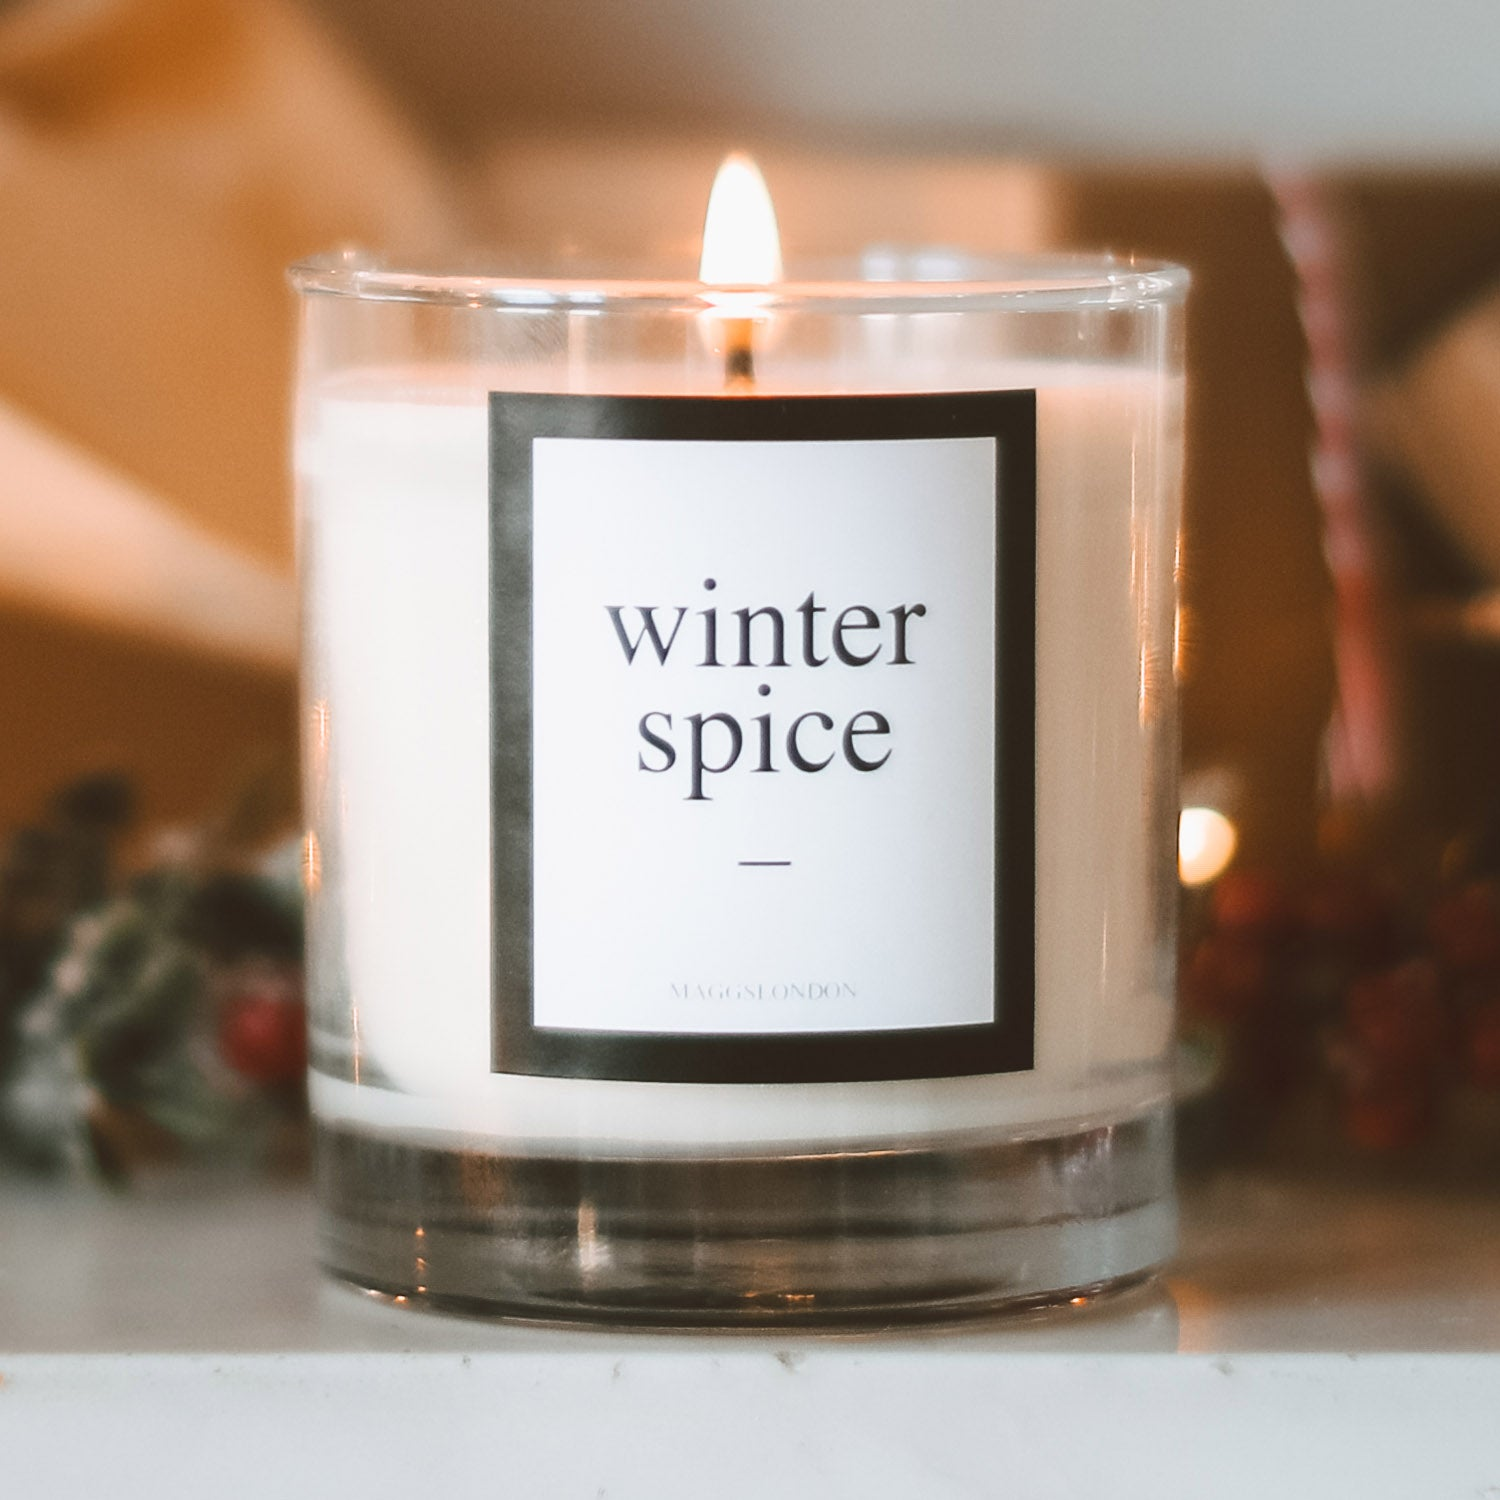 Winter Spice scented candle